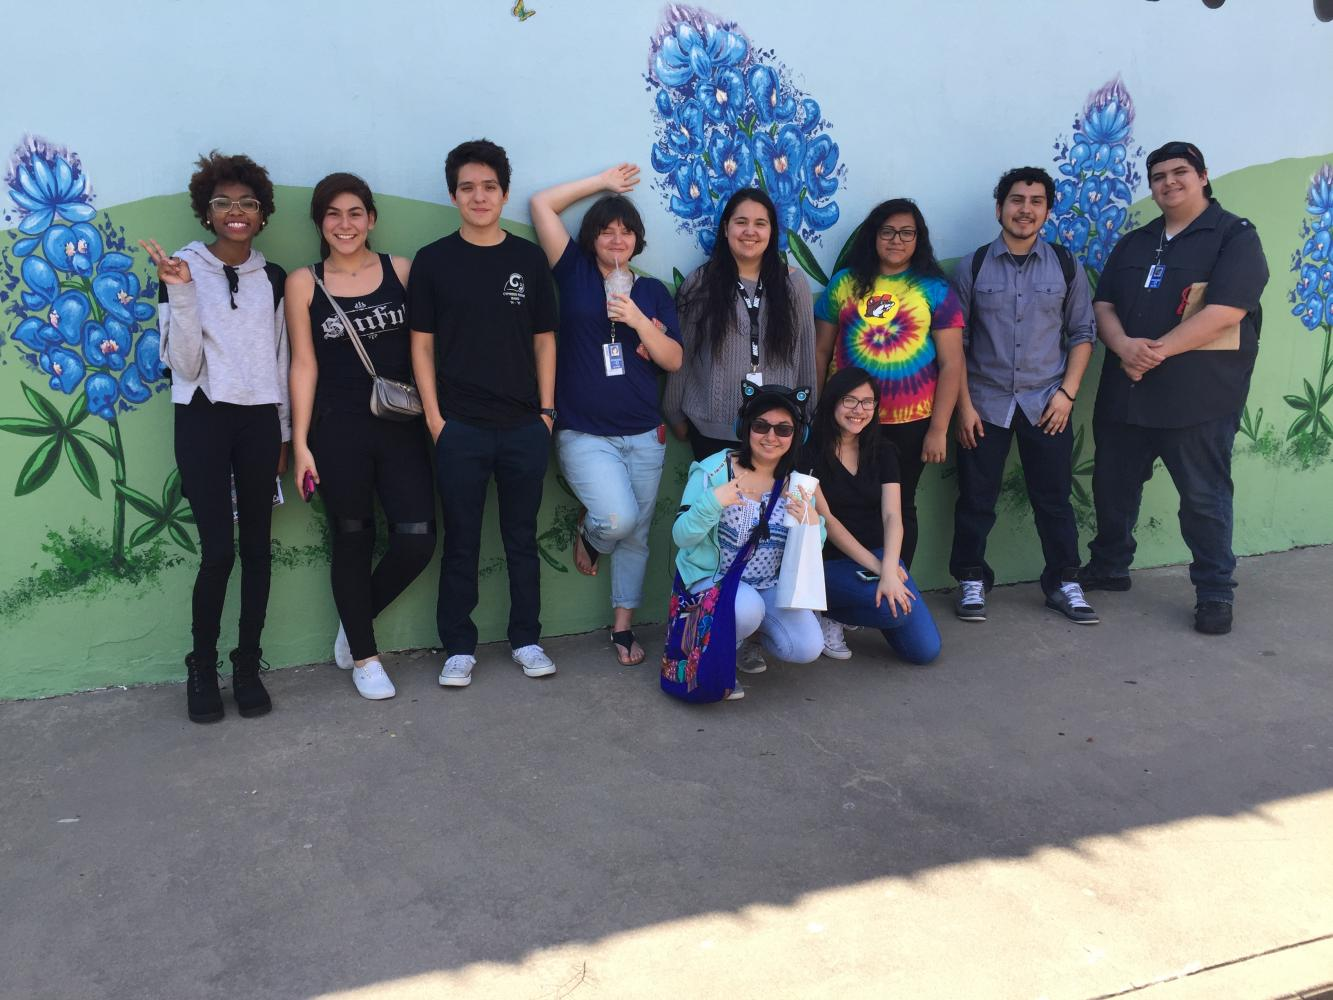 CRHS Press students attend the ILPC state journalism convention in Austin April 22-23. Pictured (standing) are: Jassmen King, Jennifer Rodriguez, Jonathan Estrada, Ashley Rowe, Hailey Procter, Lizeth Gonzalez, Rodrigo Rojas and Luis Duque; and (kneeling) Dominique Escobar and Gabriela Rodriguez.